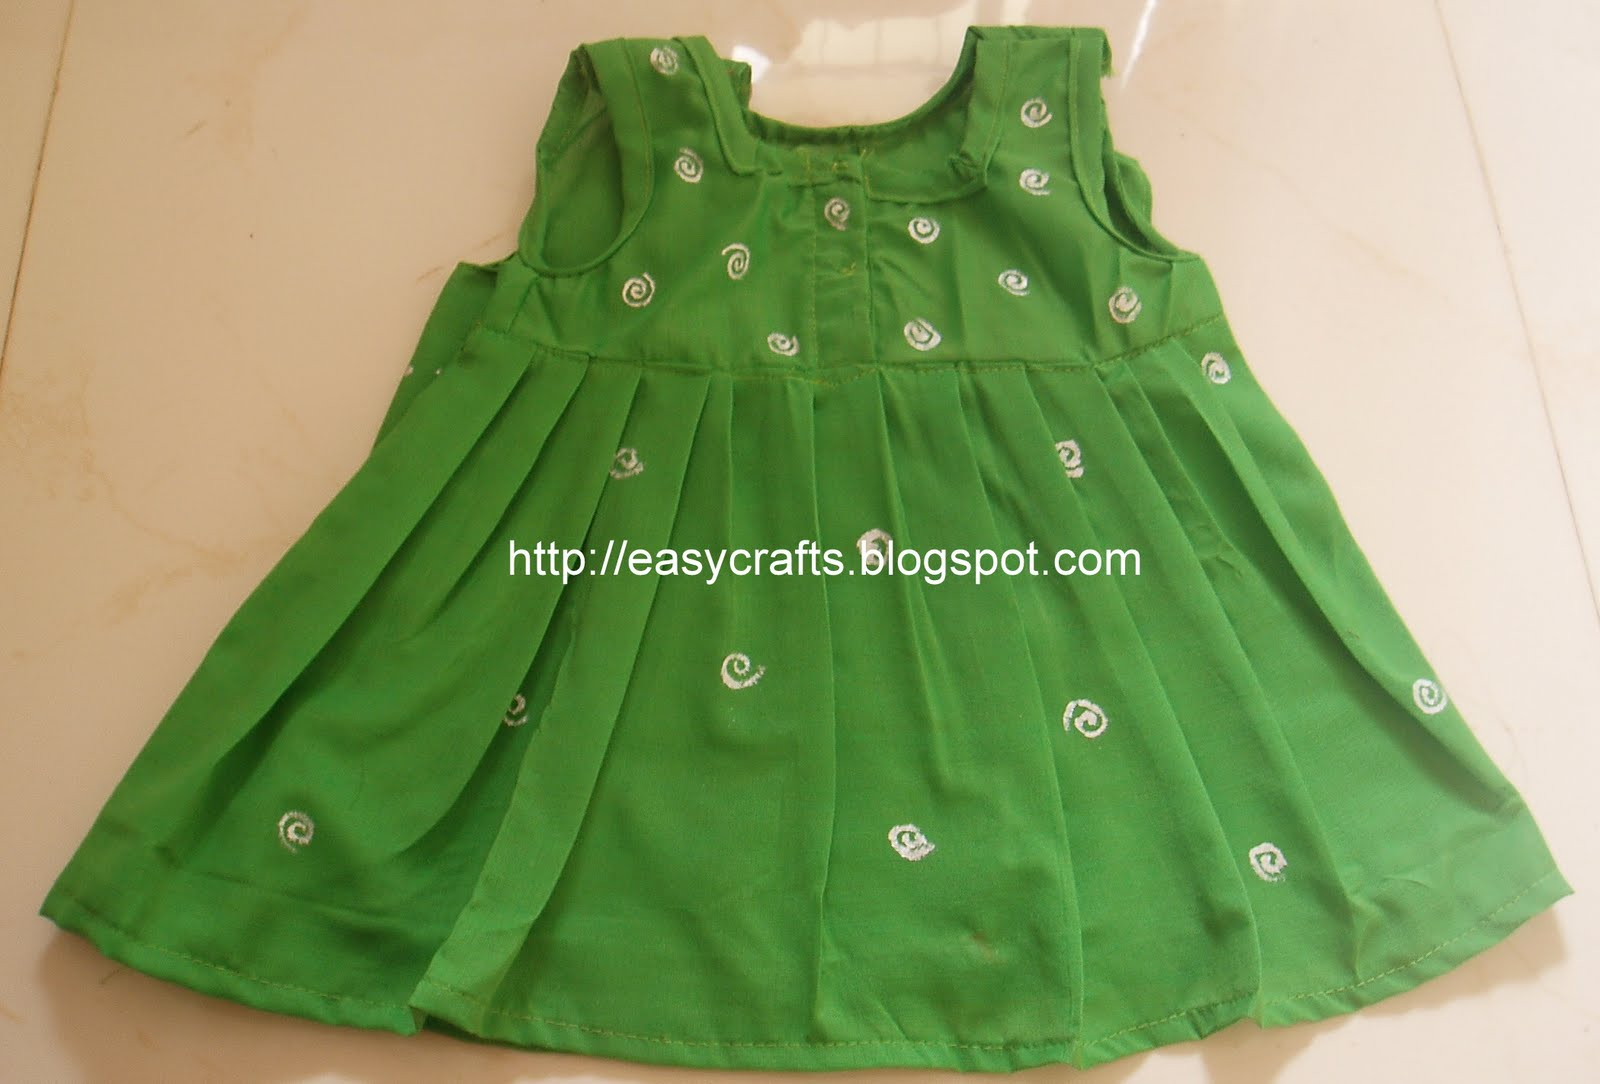 2b46fbb4a582 Easy Crafts - Explore your creativity  New born - 6 months baby frock